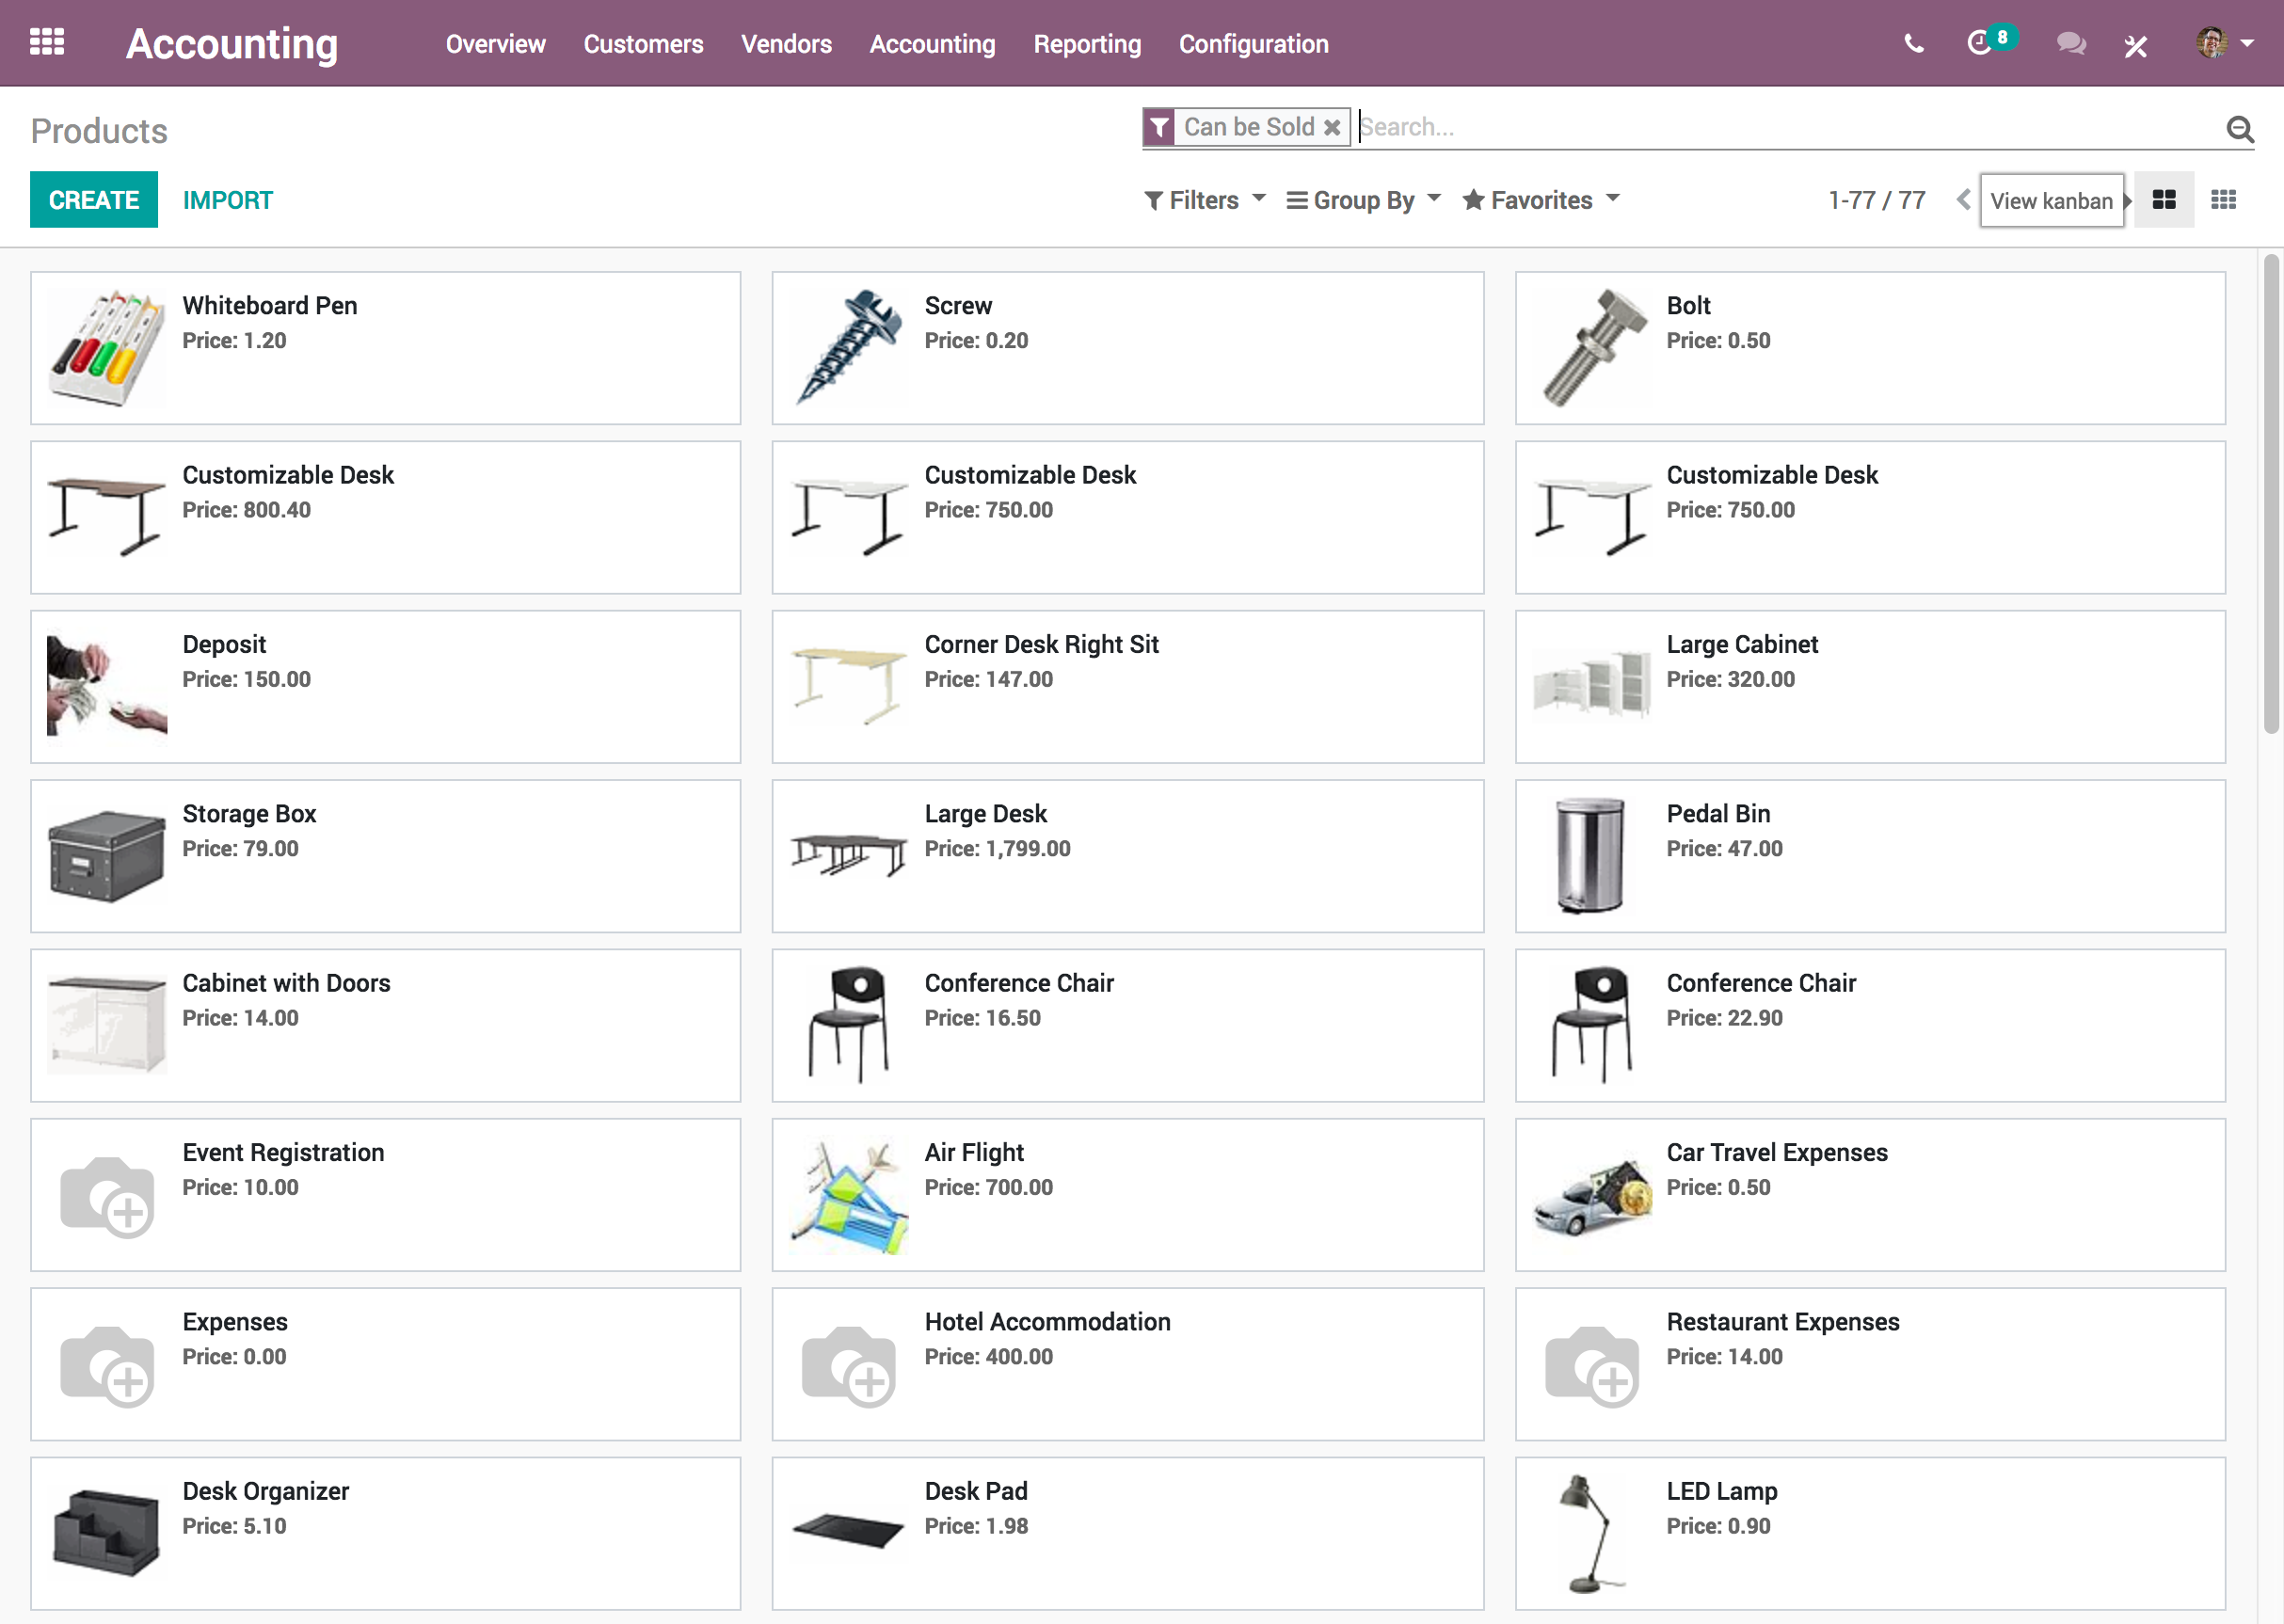 Odoo Accounting - Products